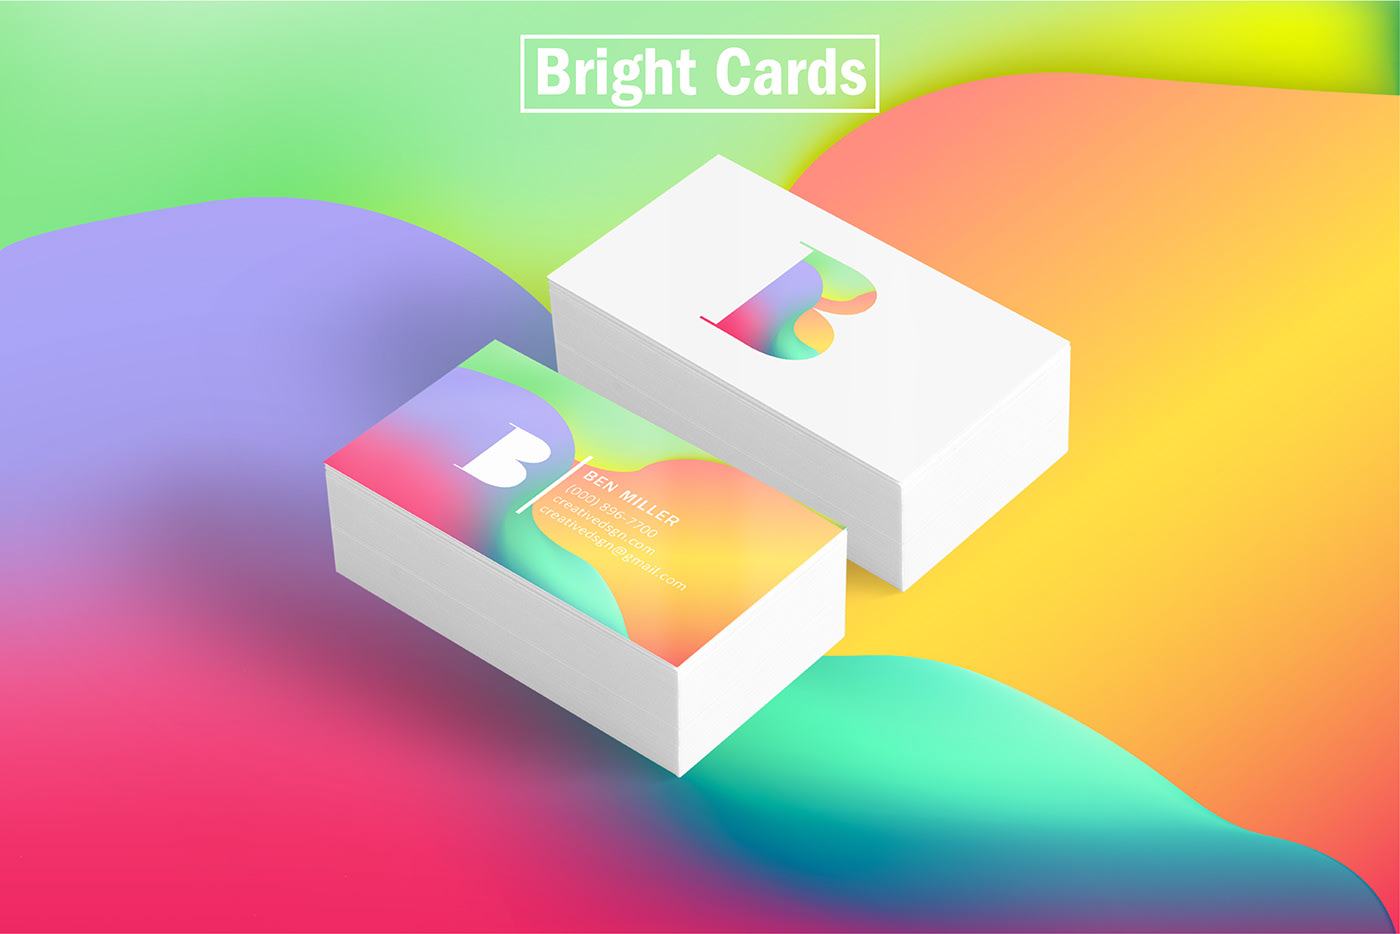 gradient,graphics,design,Layout,trend,vivid,colorful,bright,modern,minimal